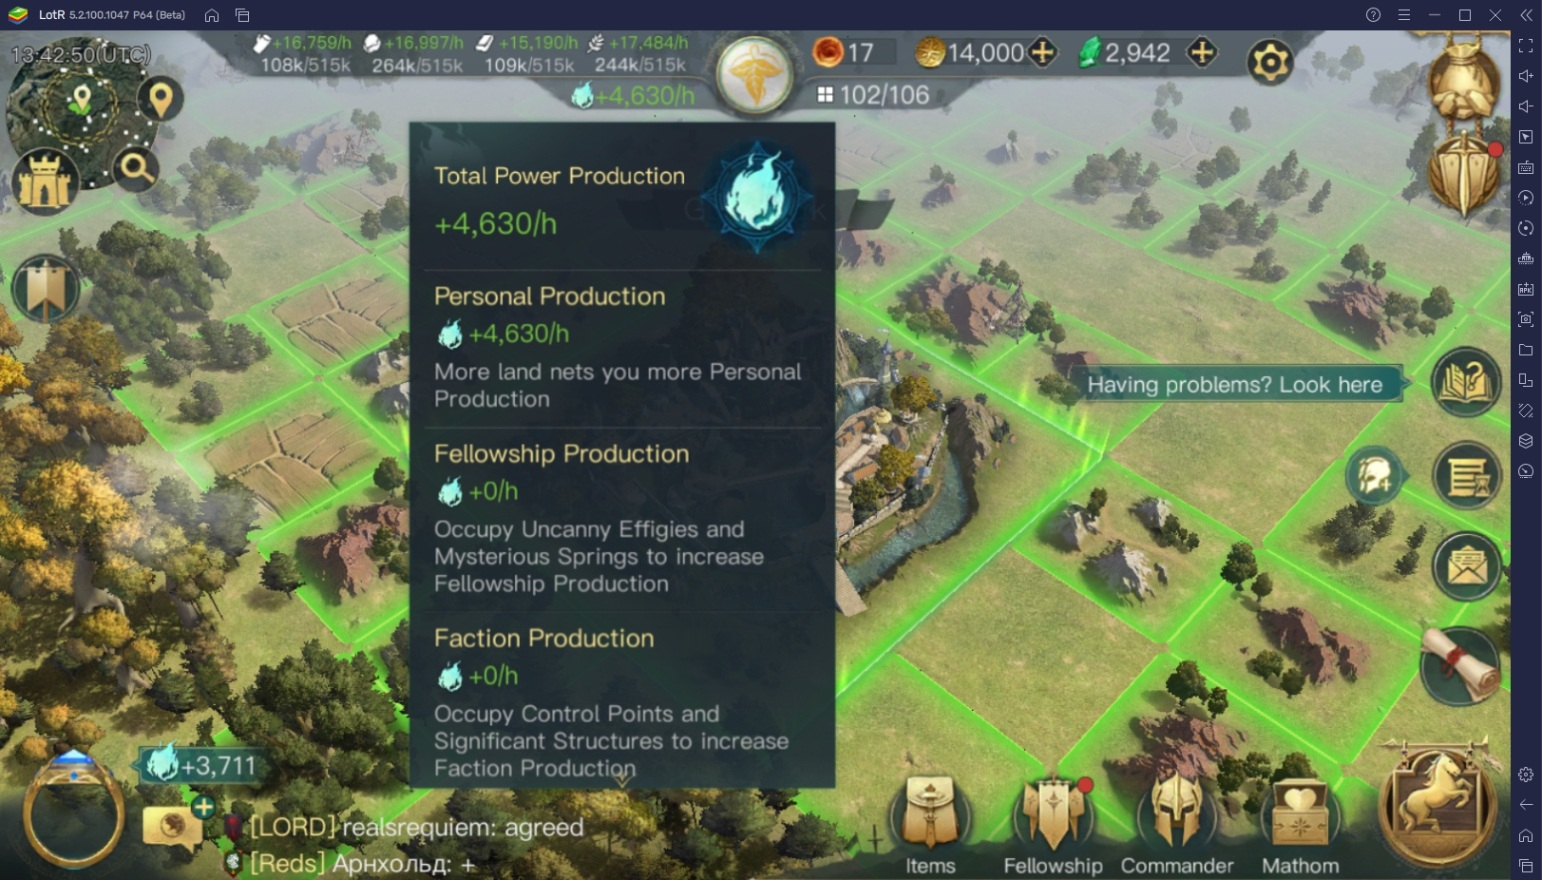 BlueStacks' Beginners Guide to Playing The Lord of the Rings: Rise War